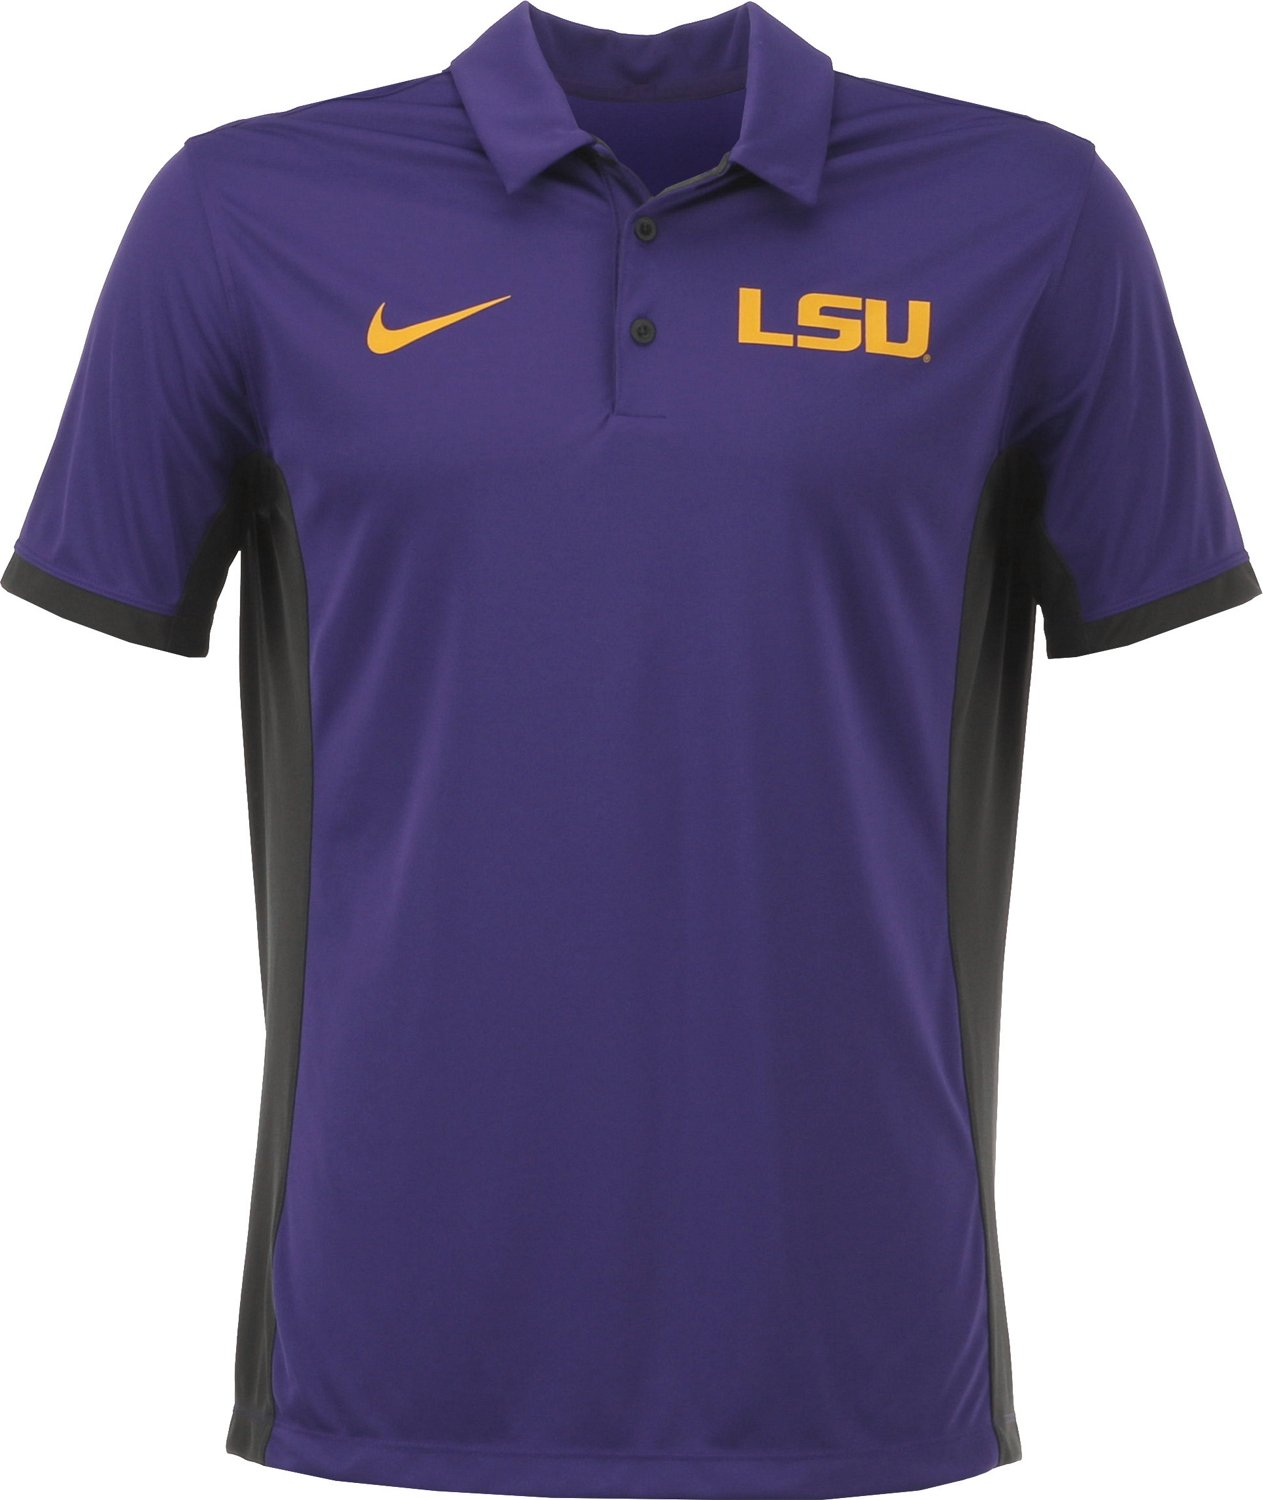 0dd774d9 Display product reviews for Nike Men's Louisiana State University Dri-FIT  Evergreen Polo Shirt